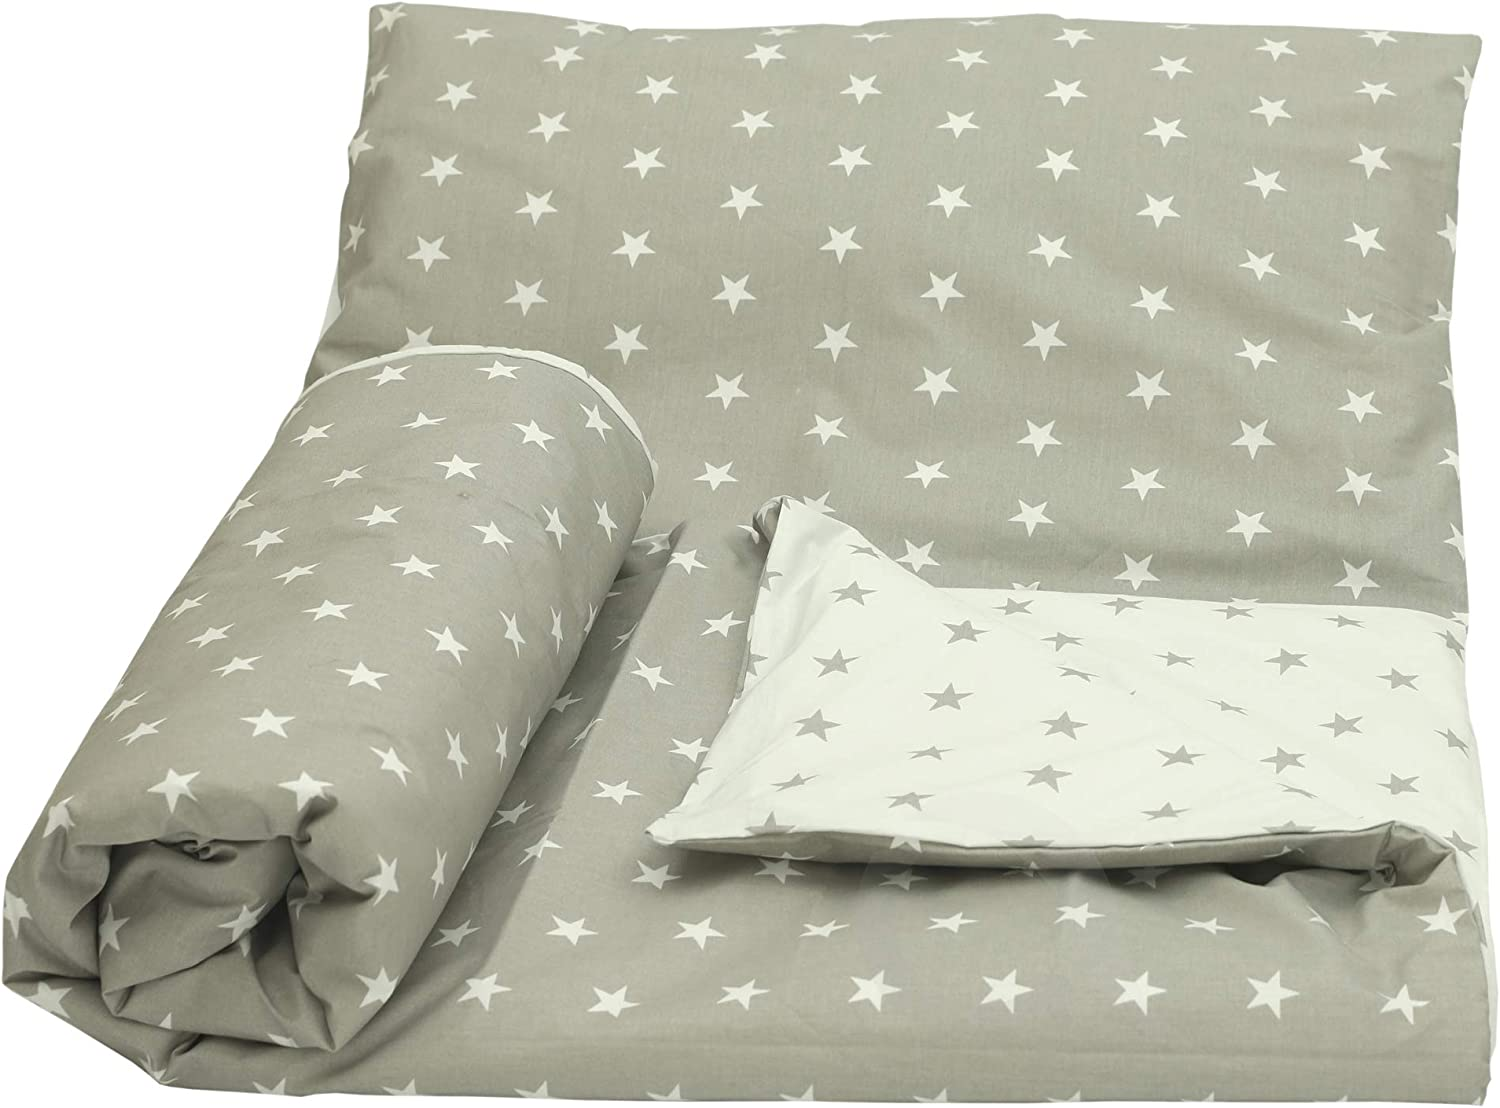 Pink /& Grey Stars//White, 120 x 90 cm Olobaby Reversible Cot Duvet//Quilt Cover and Pillowcase Set 2 pcs 100/% Cotton